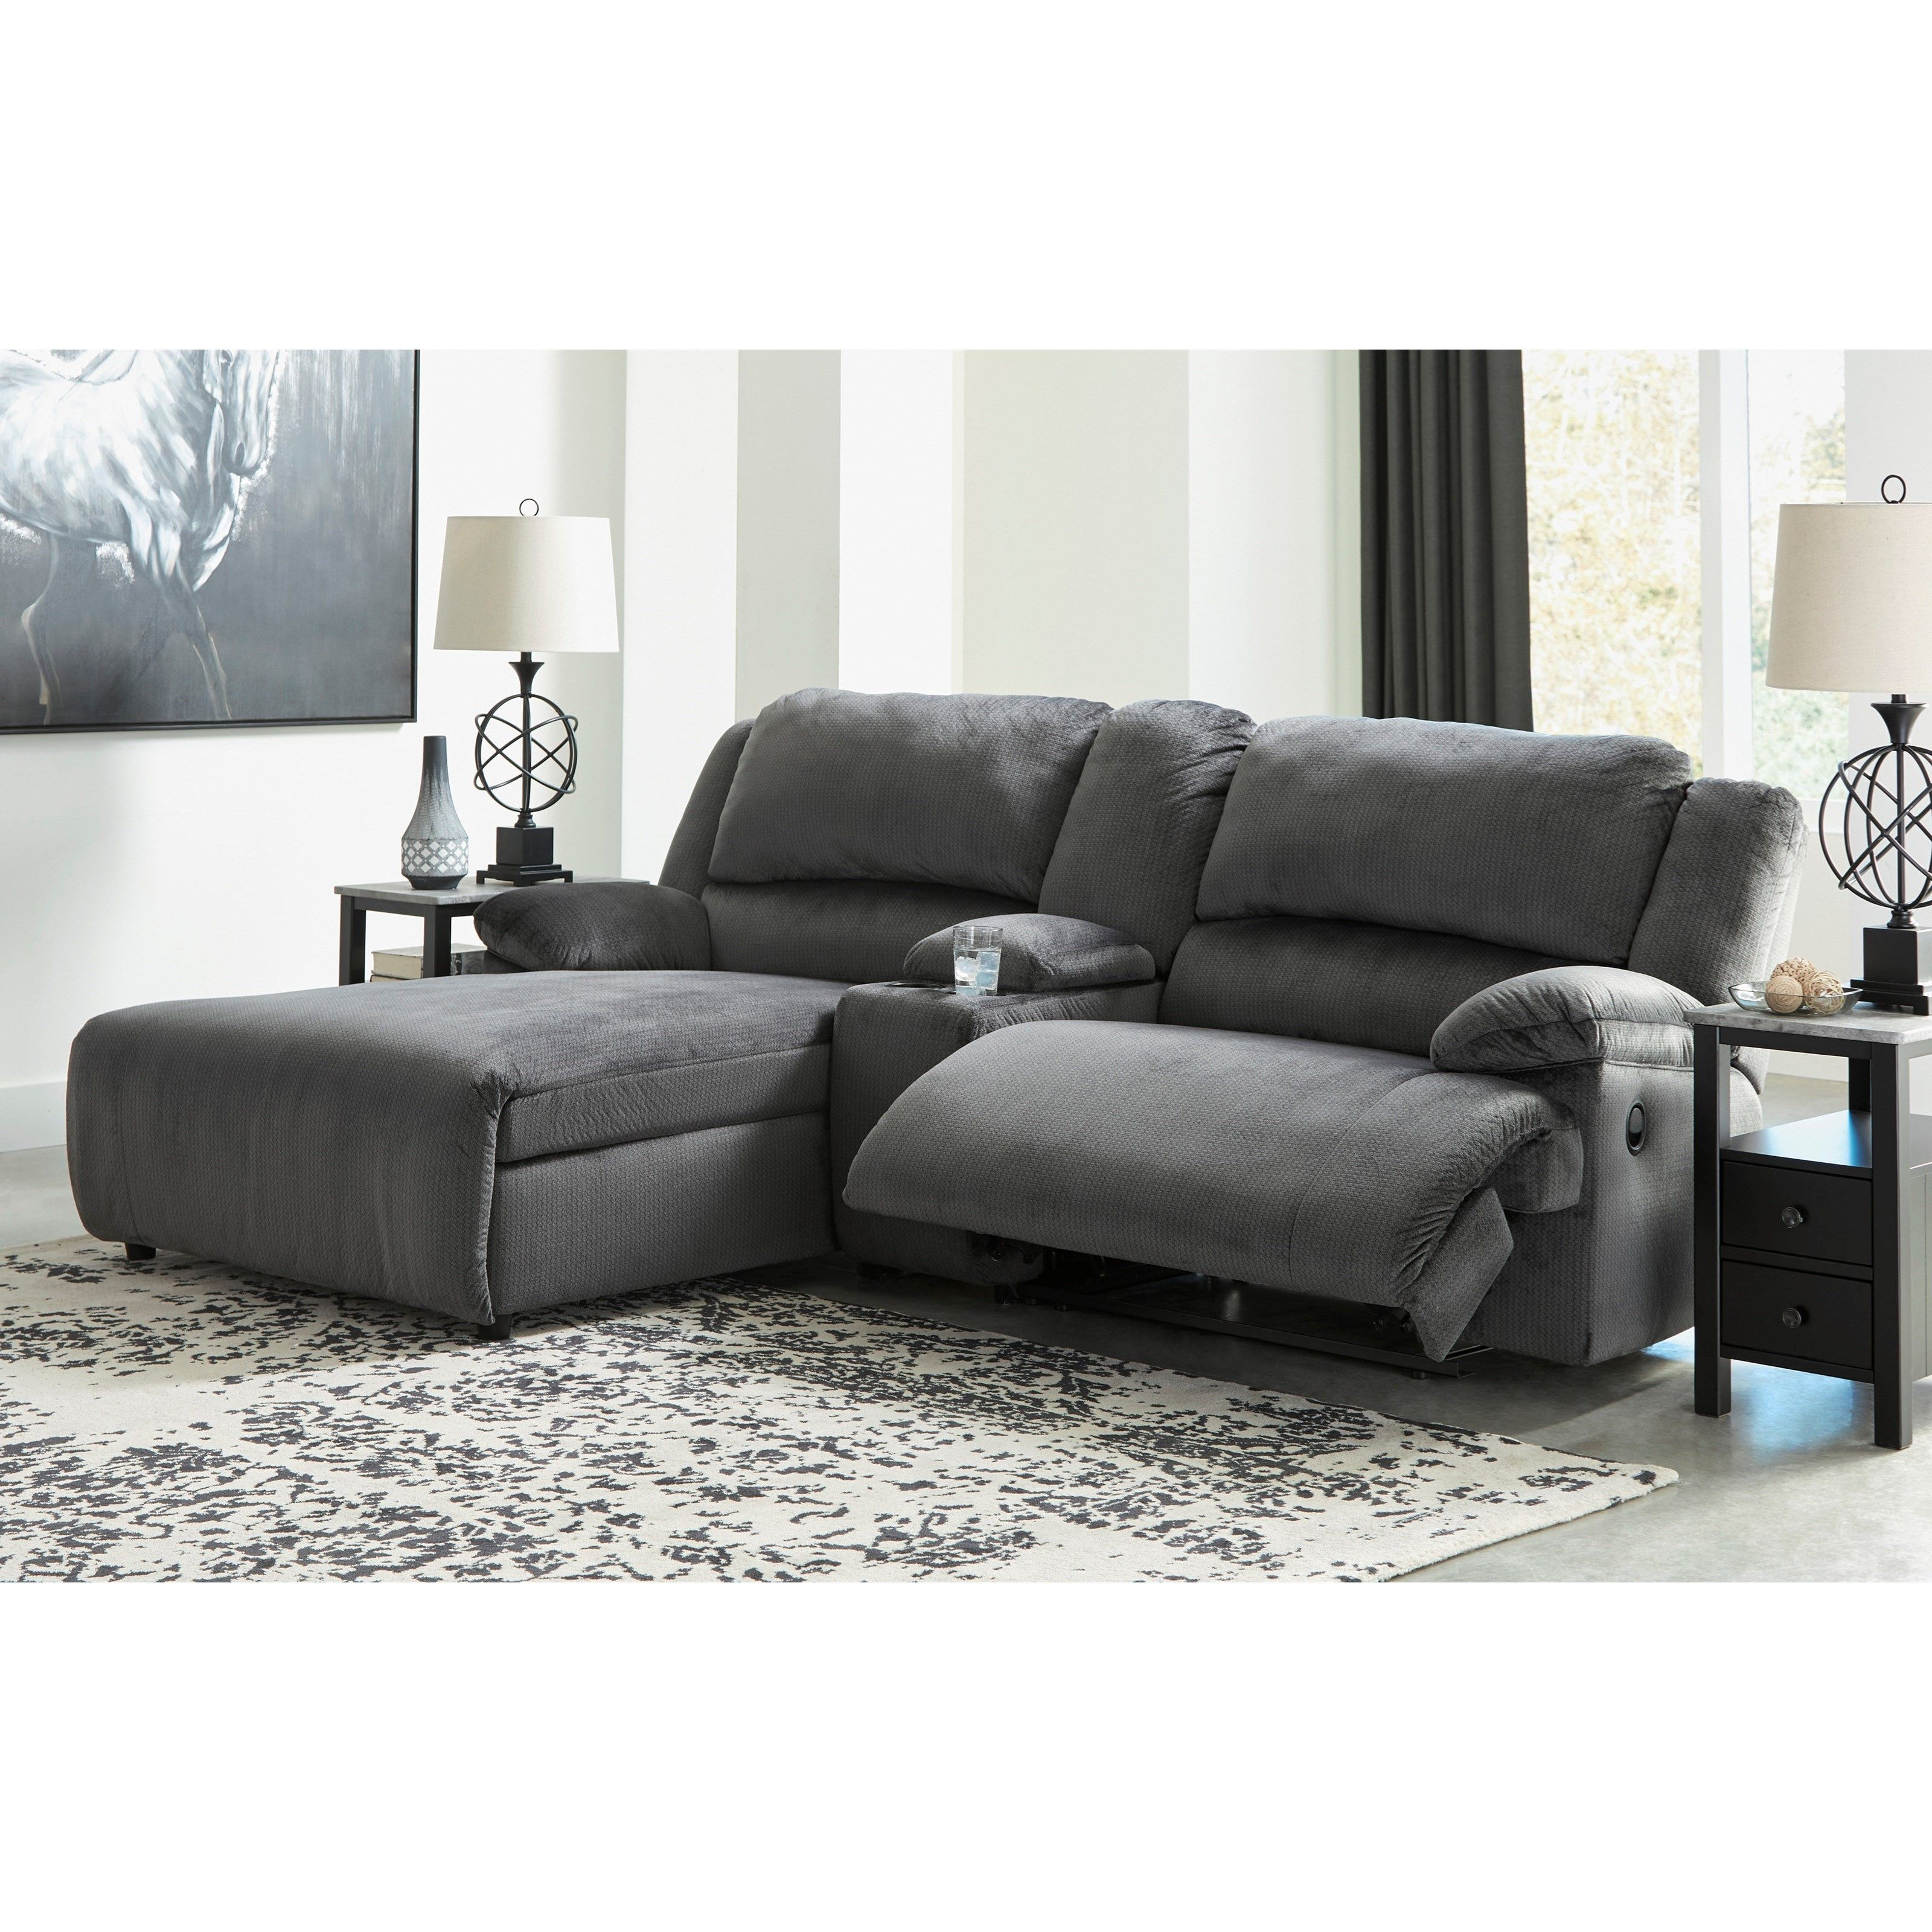 Clonmel Power Reclining Sectional W Chaise Console By Signature Design By Ashley At Conlin S Furniture Small Sectional Sofa Reclining Sectional With Chaise Home